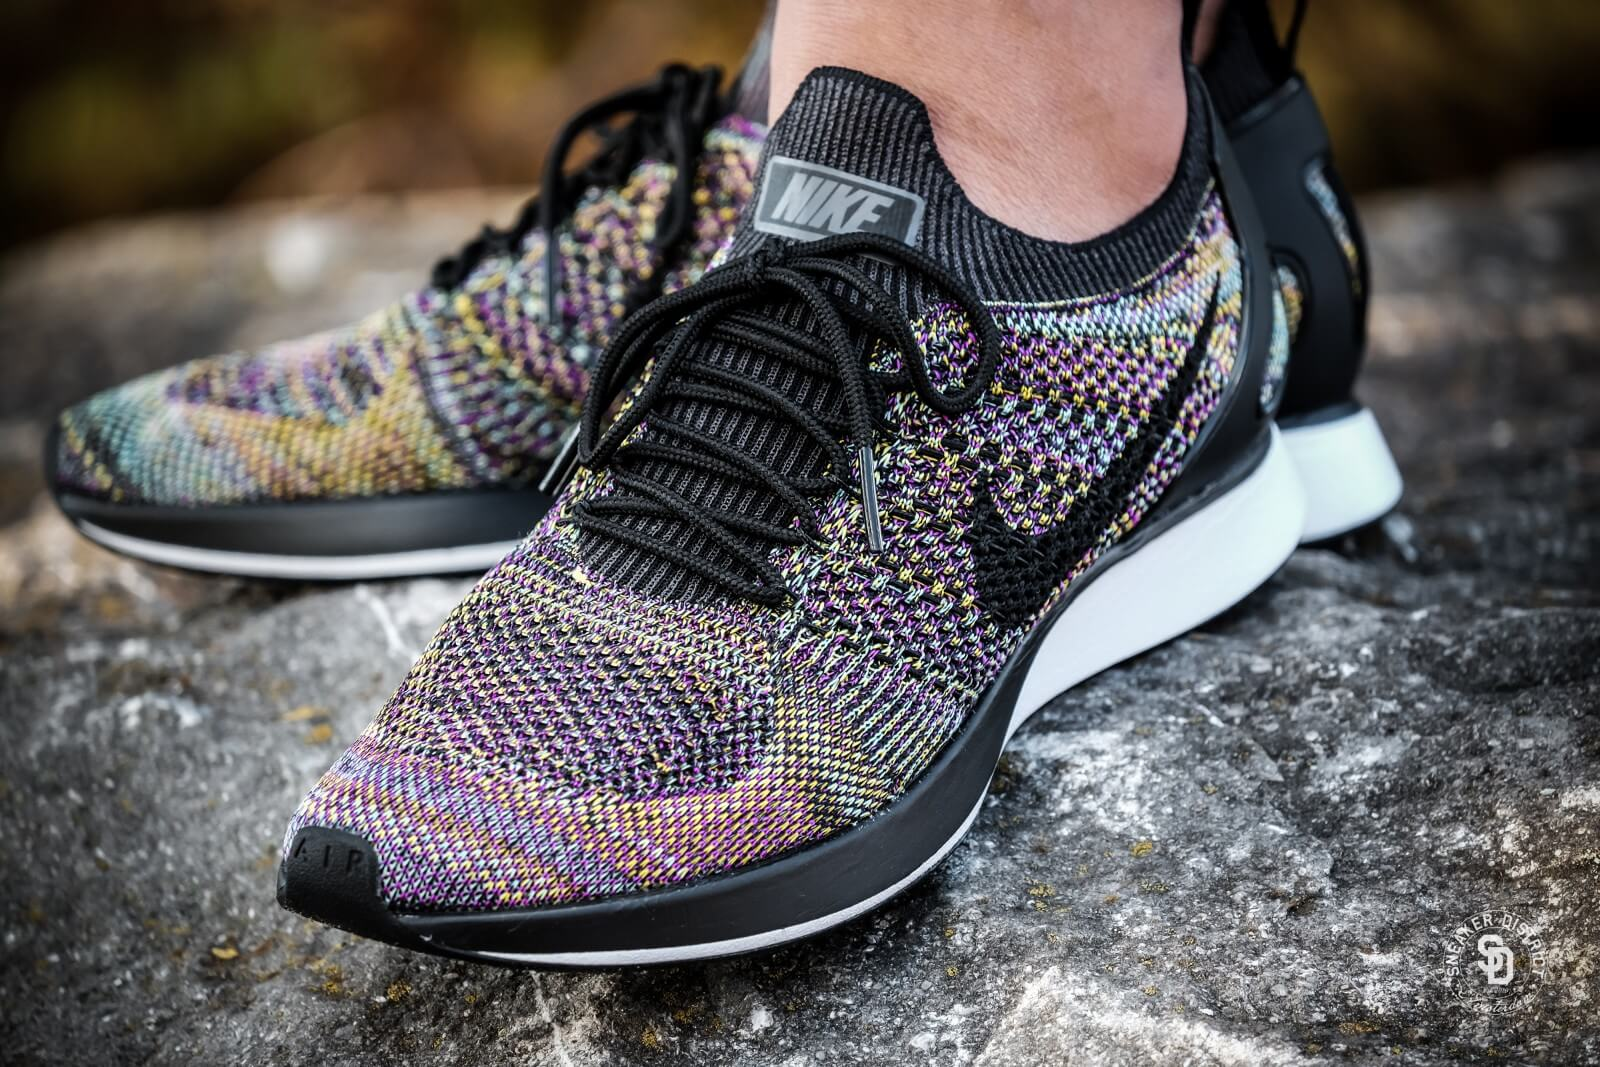 Nike Air Zoom Mariah Flyknit Racer Black Vivid Purple